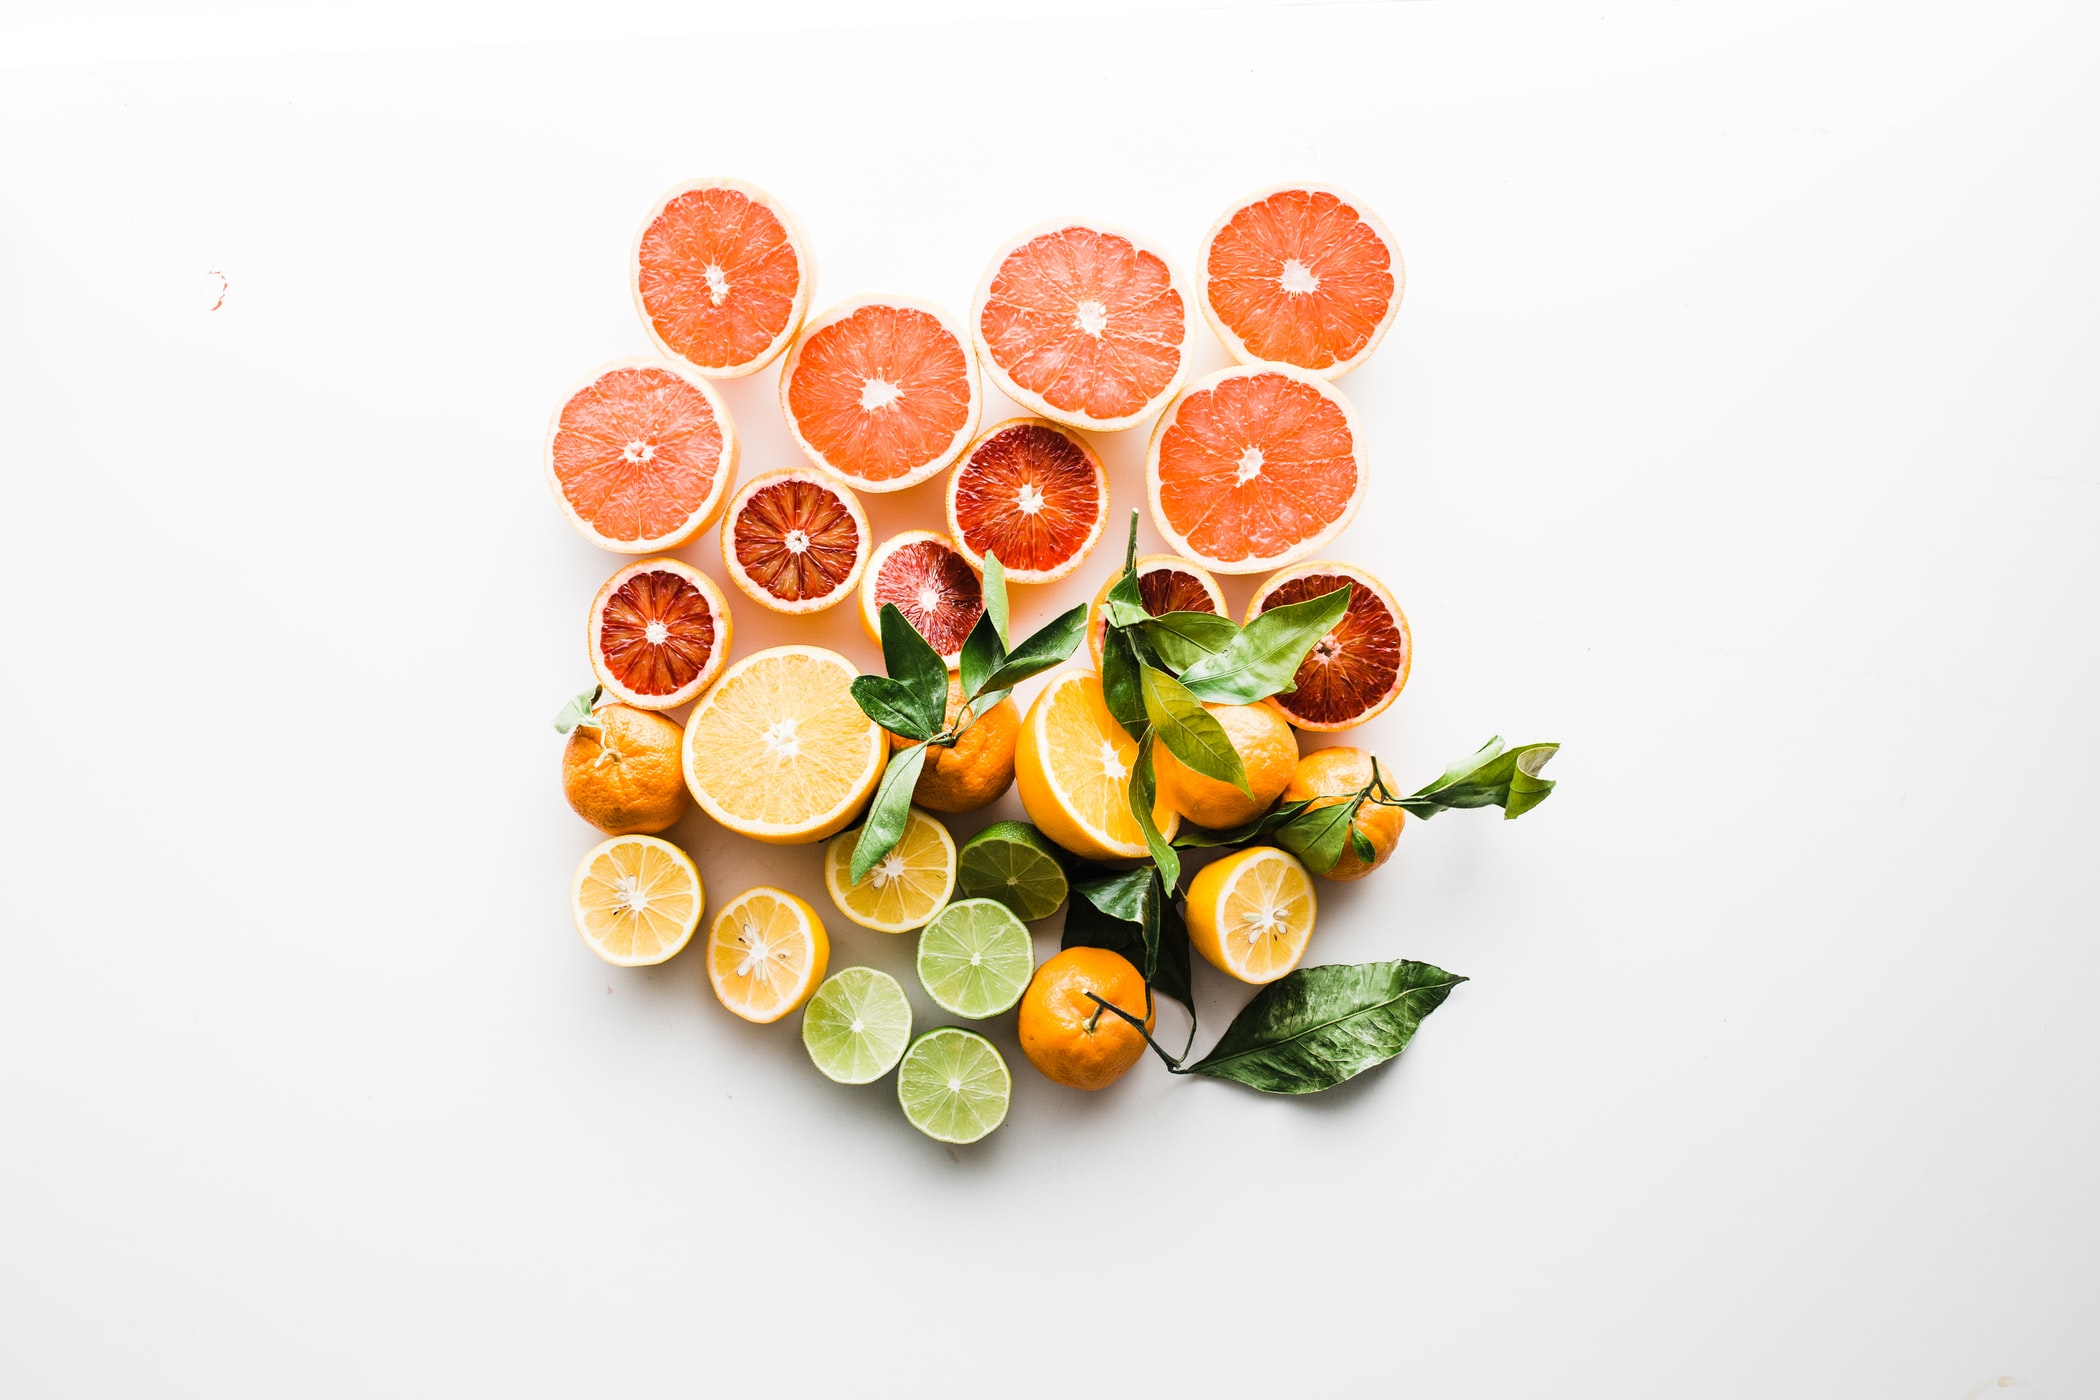 citrus fruit backdrop with lemons oranges limes grapefruits and blood oranges